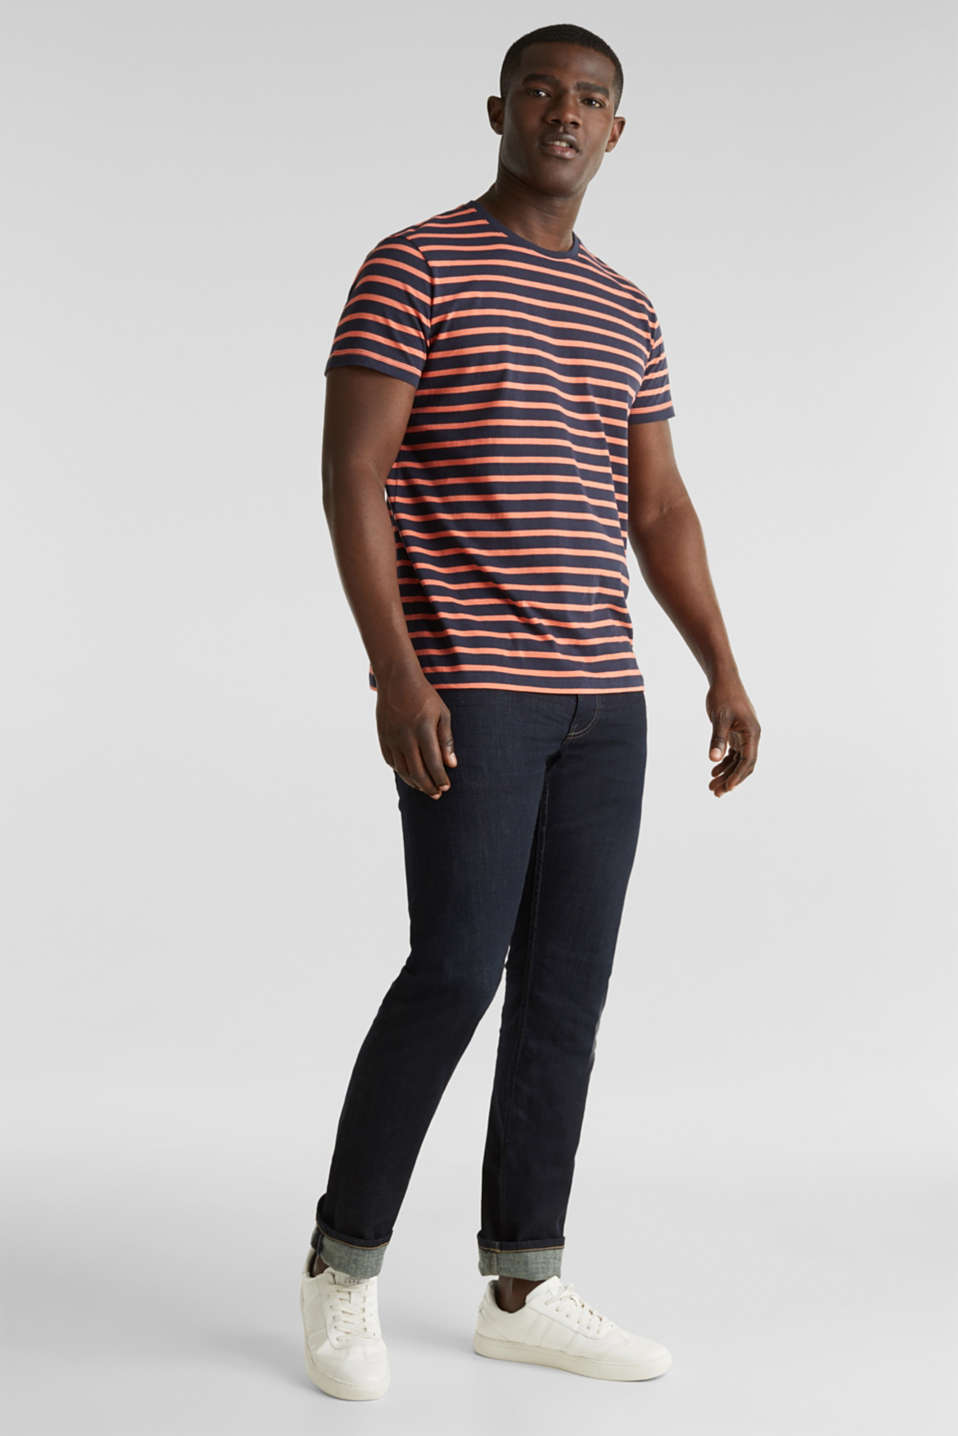 Striped jersey top, cotton, NAVY 3, detail image number 6